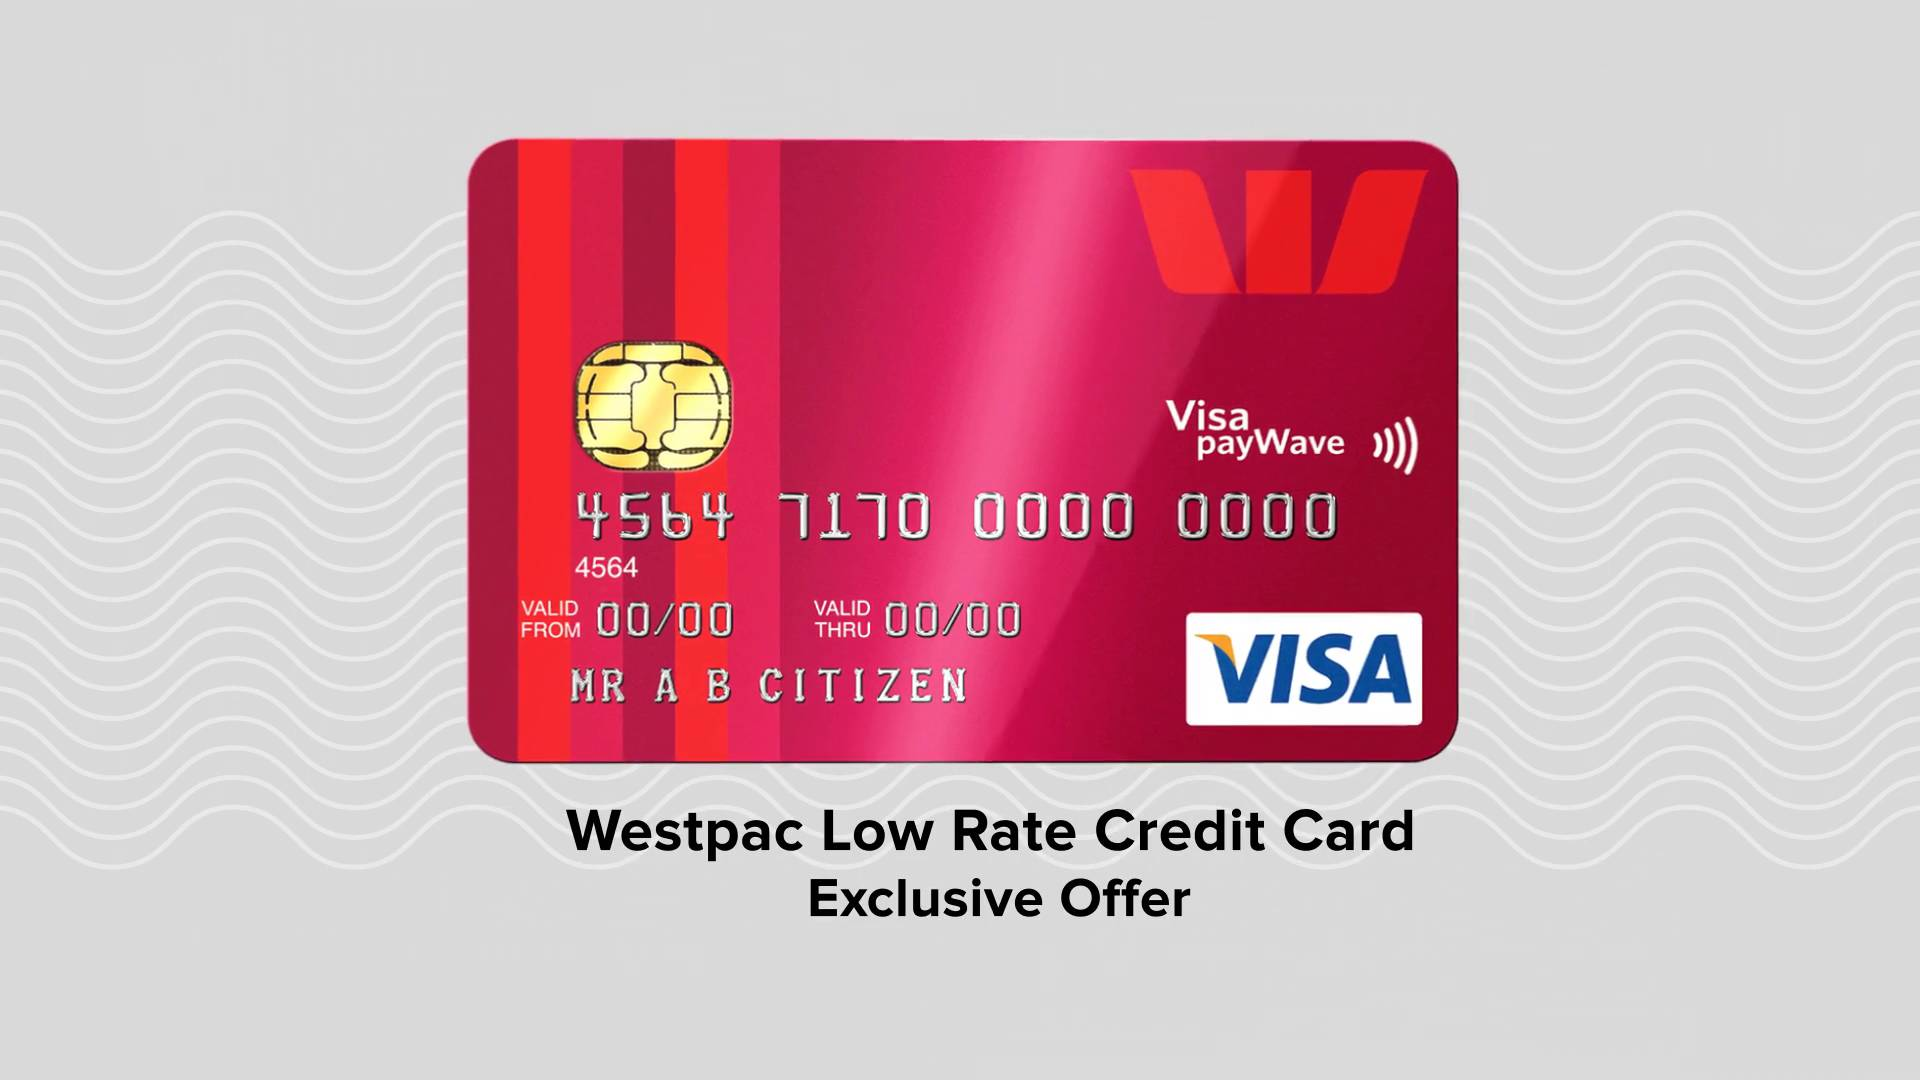 Credit Card Comparison: Compare & Review 200+ Cards